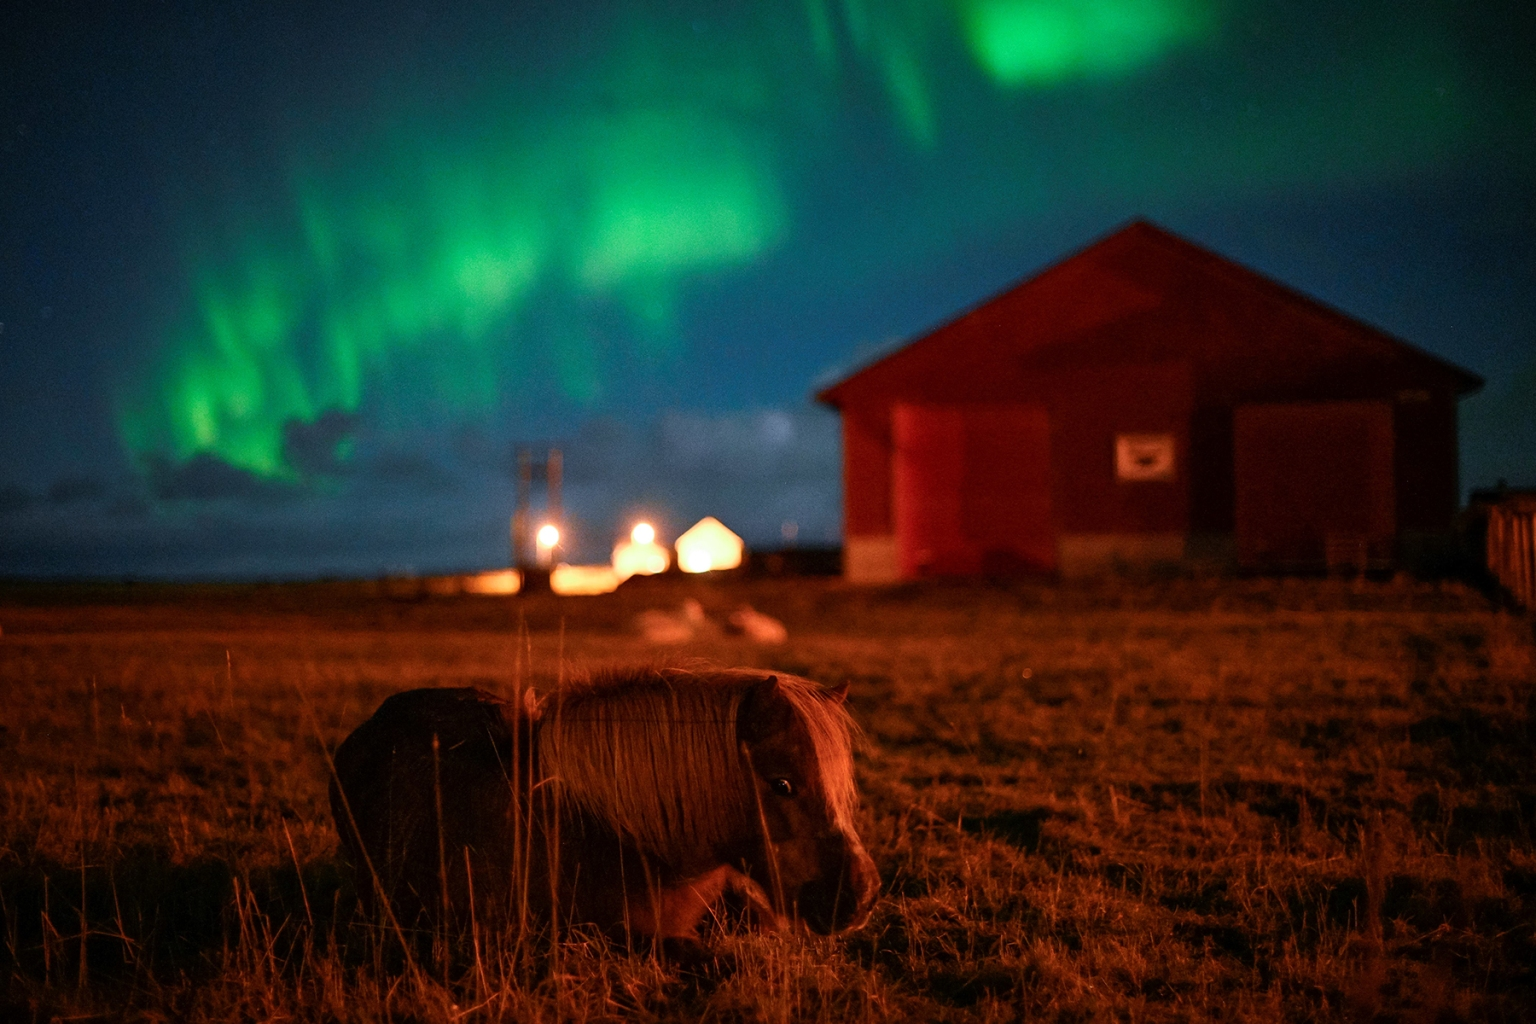 A pony grazes under the northern lights in Unstad, Norway, on Sept. 30. Olivier Morin/AFP/Getty Images